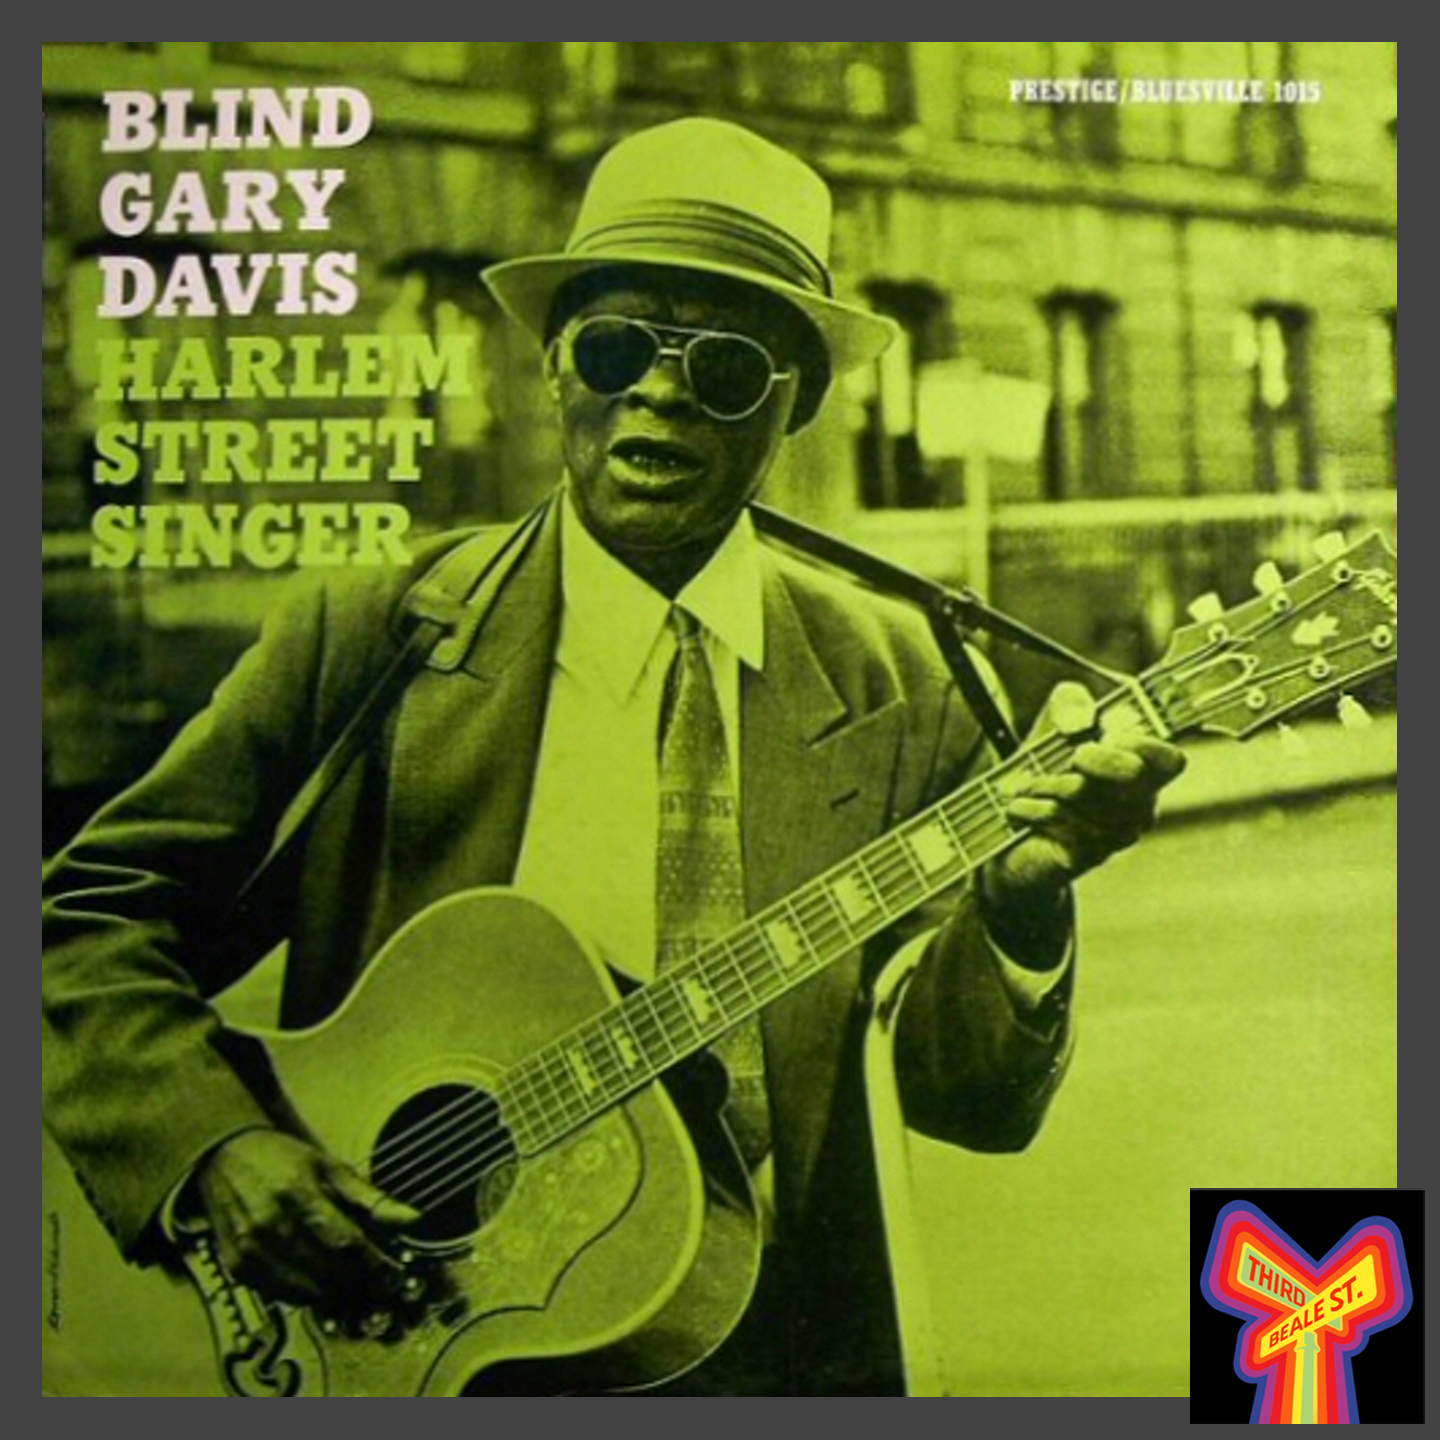 Caption: One of the distinctive album covers from the Bluesville label.